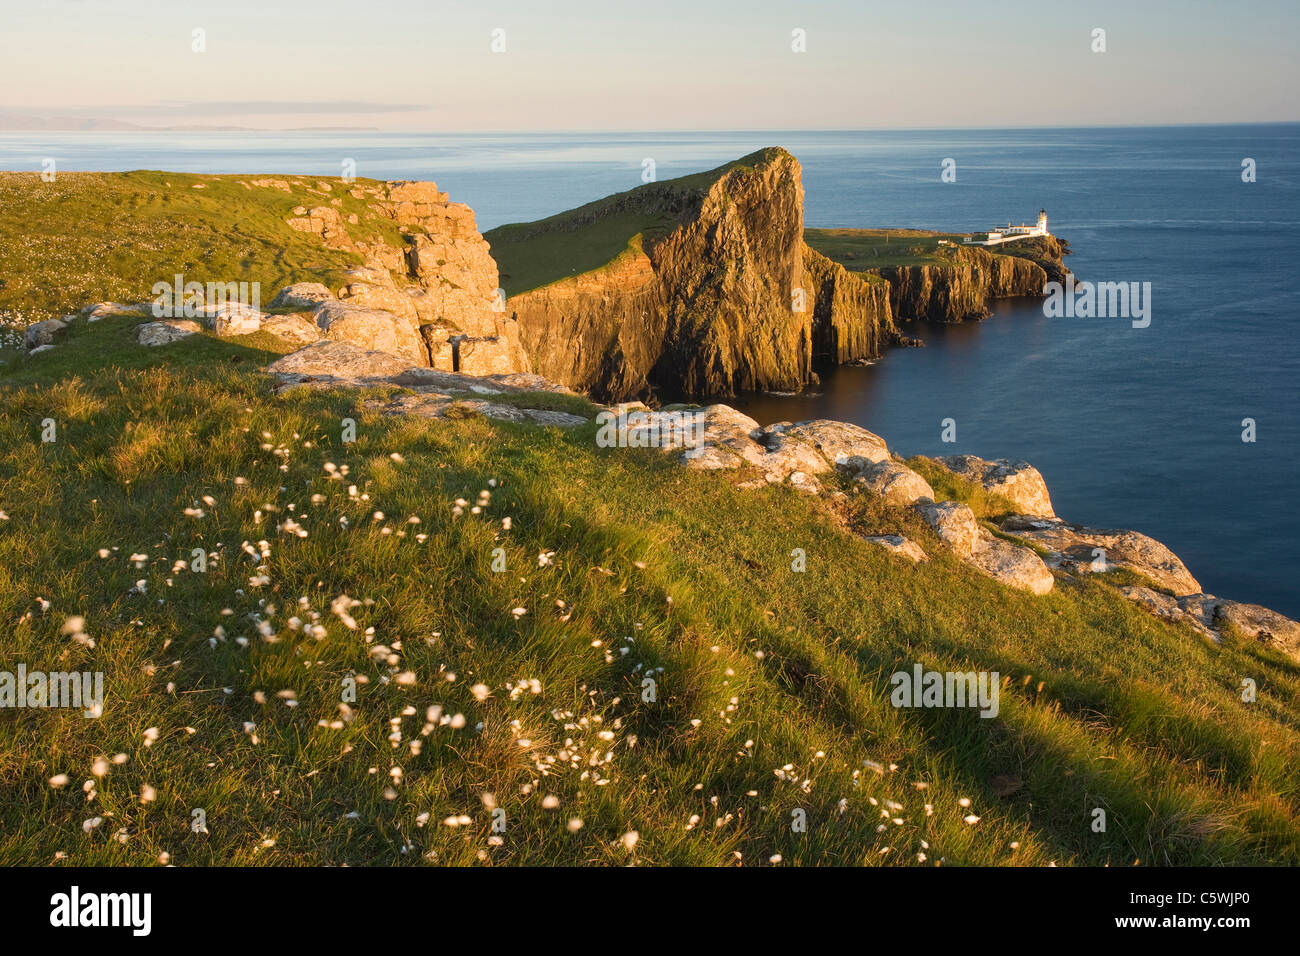 Neist Point and lighthouse in evening light, Isle of Skye, Scotland, Great Britain. Stock Photo